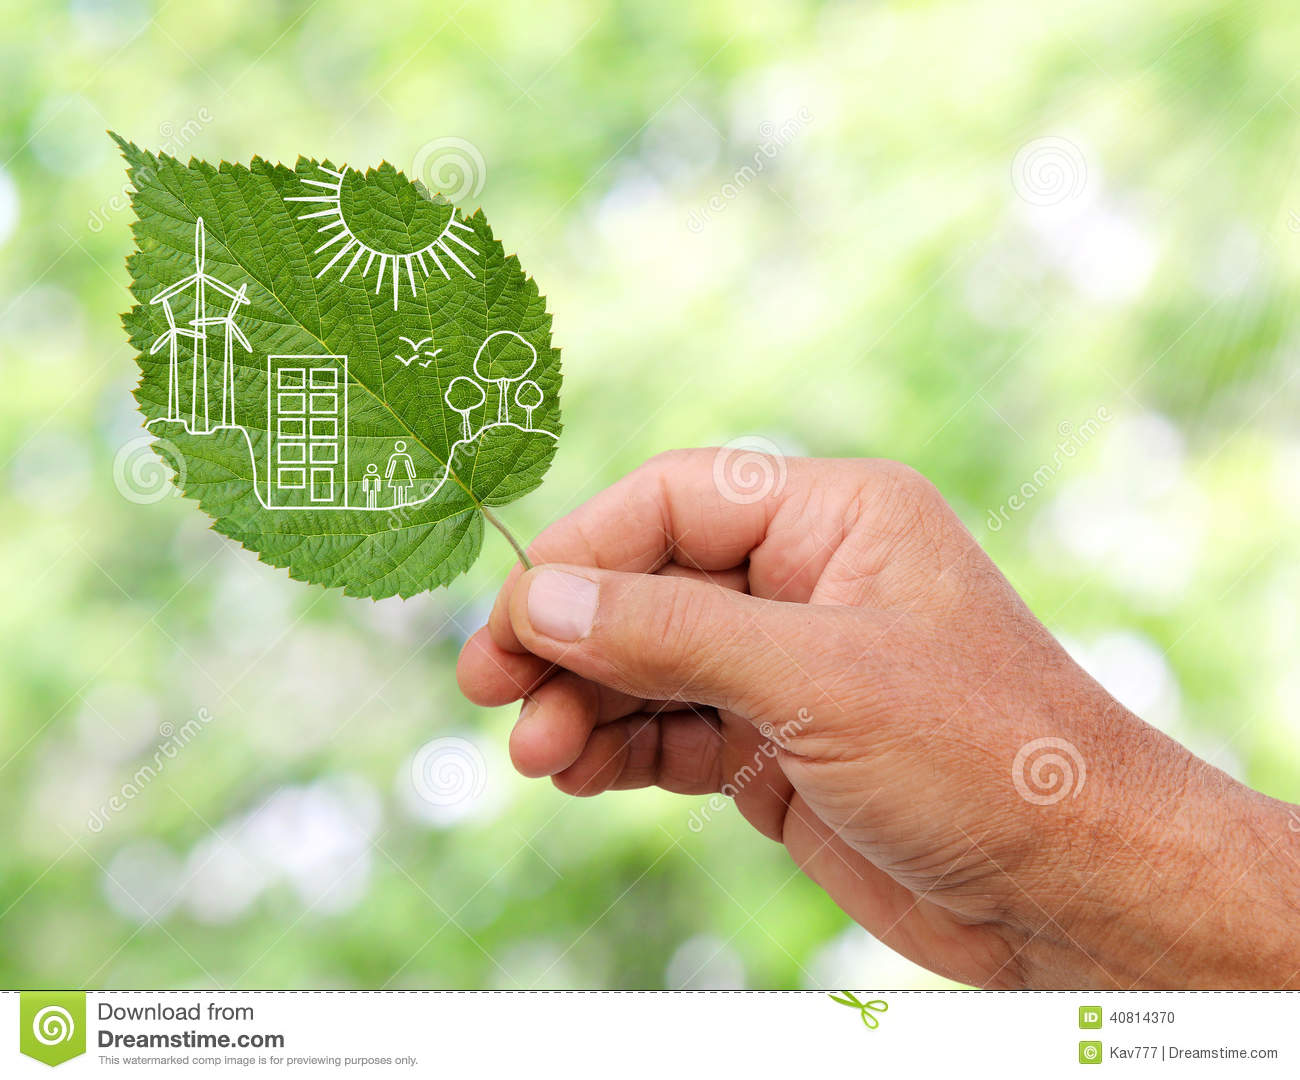 Hand Holding Green City Concept Cut The Leaves Of Plants